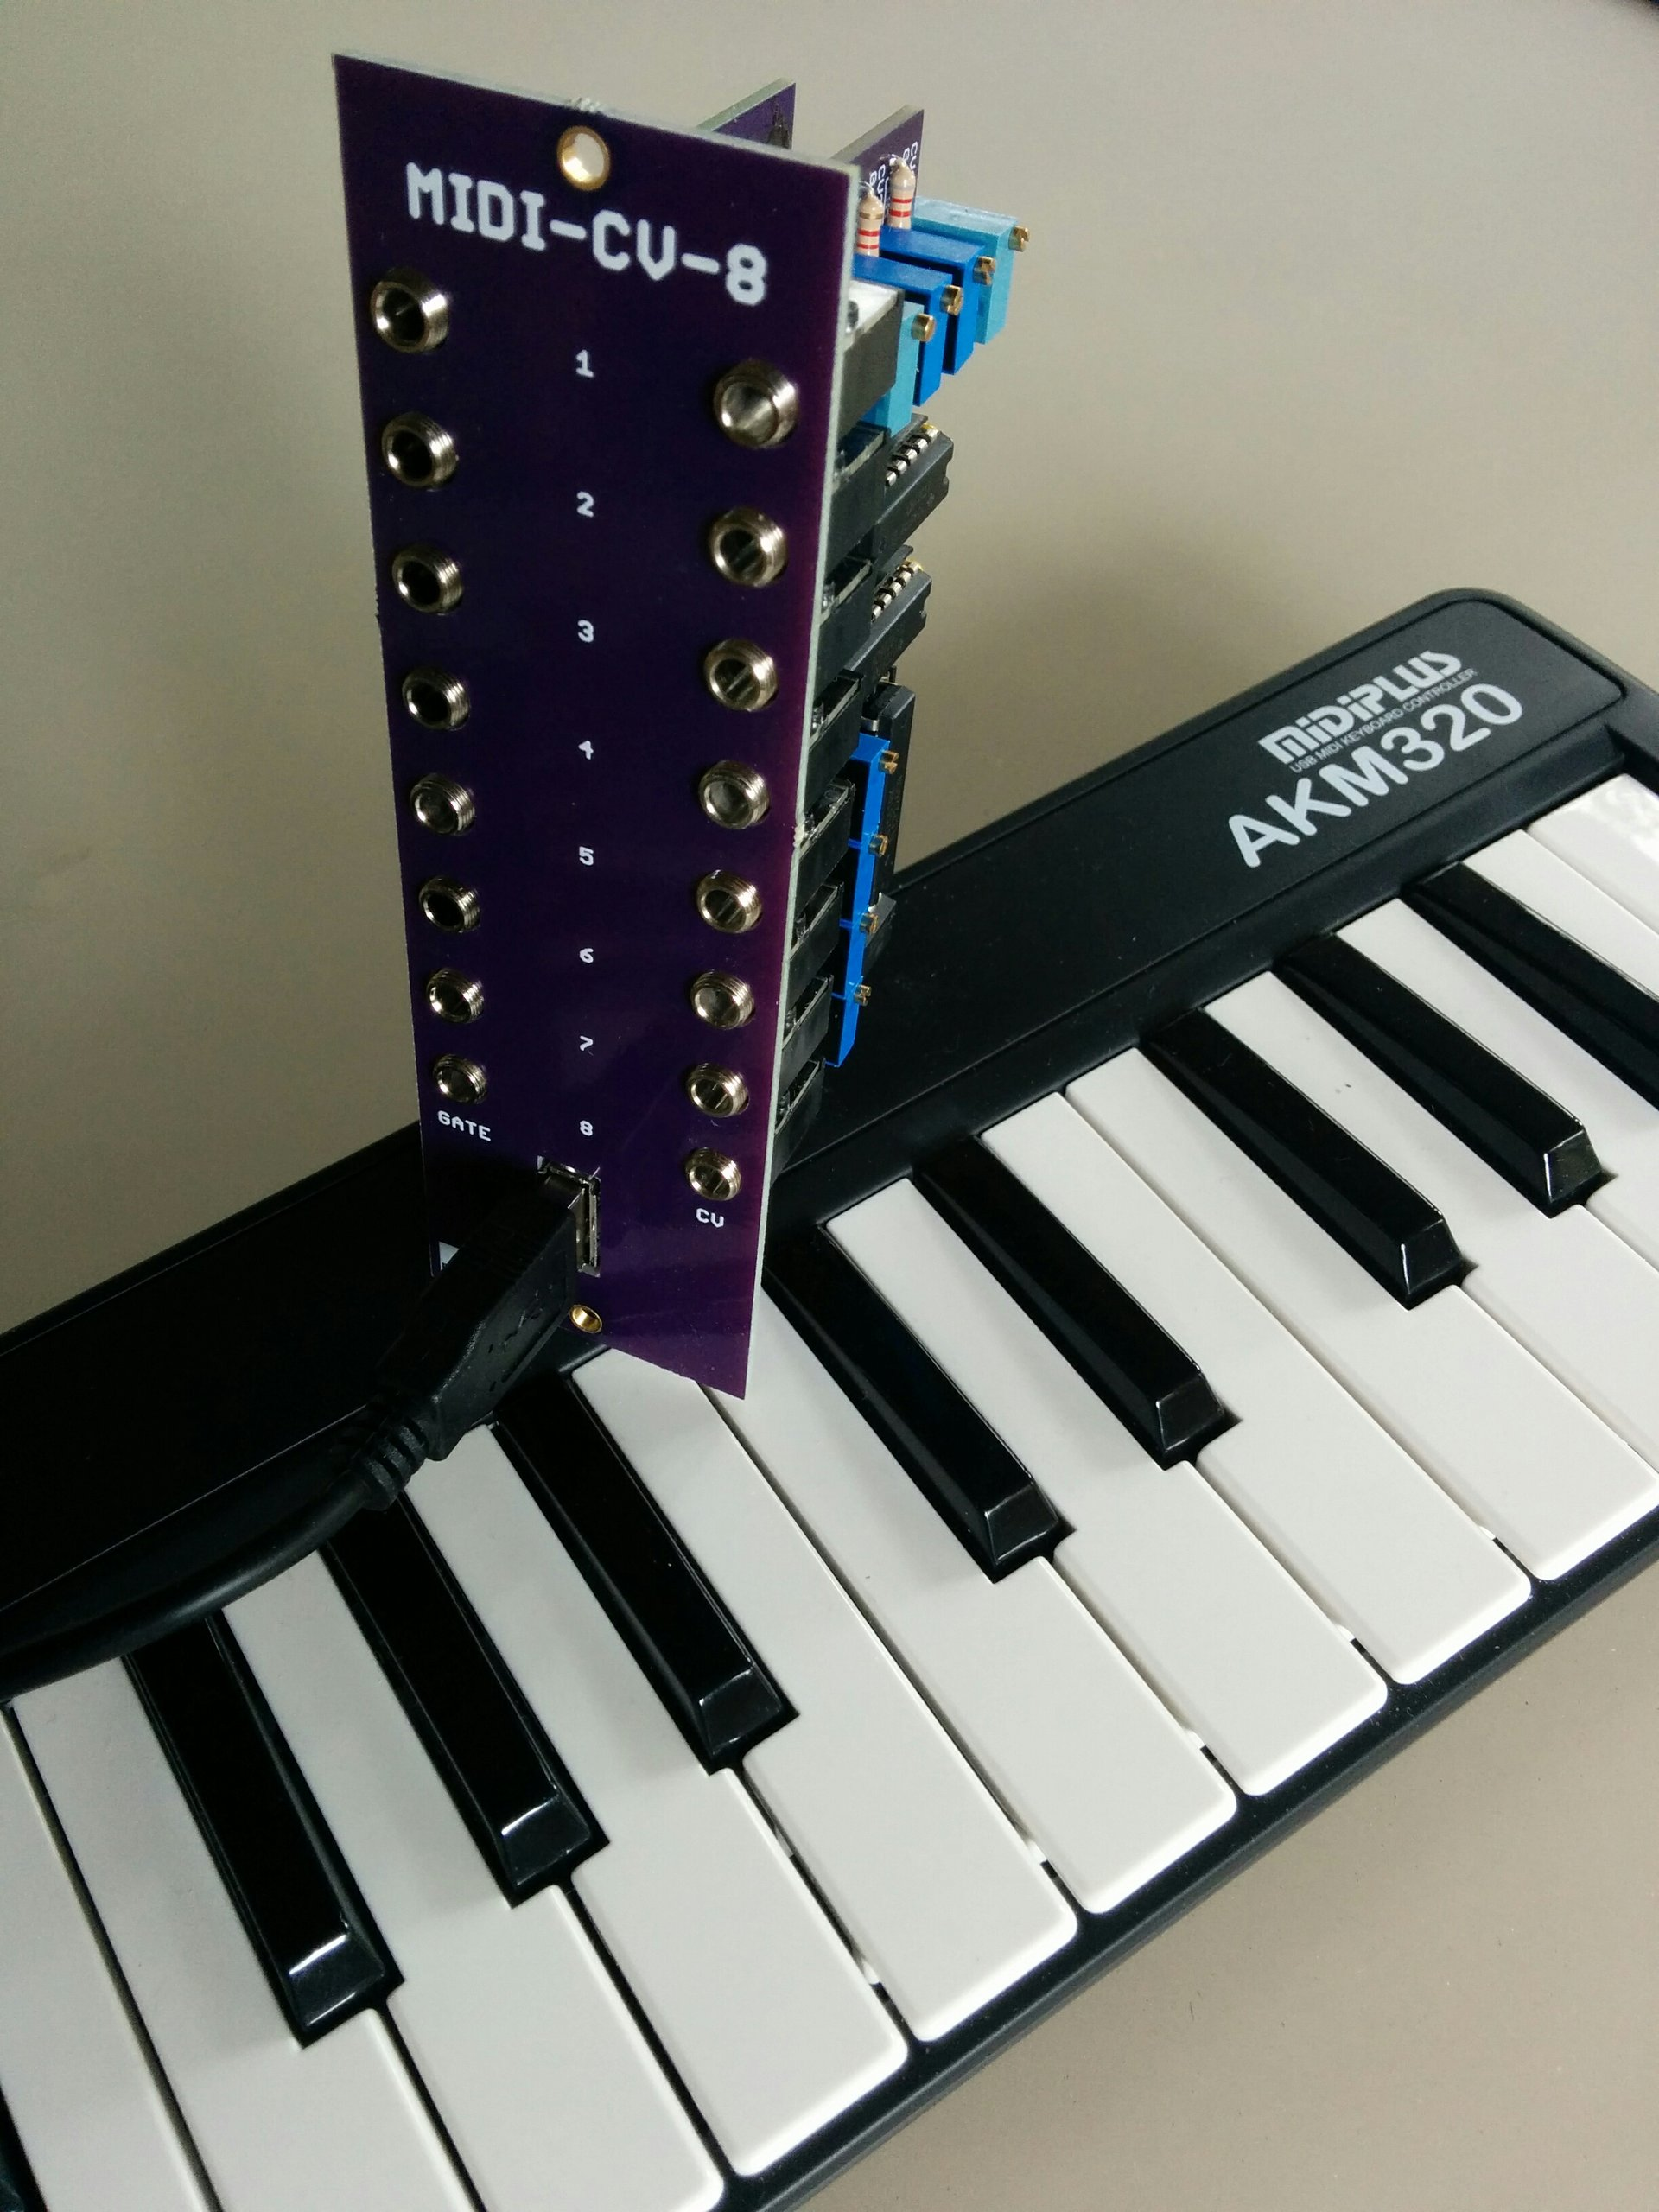 midi usb keyboard controller eurorack pcb set from pmfoundations on tindie. Black Bedroom Furniture Sets. Home Design Ideas